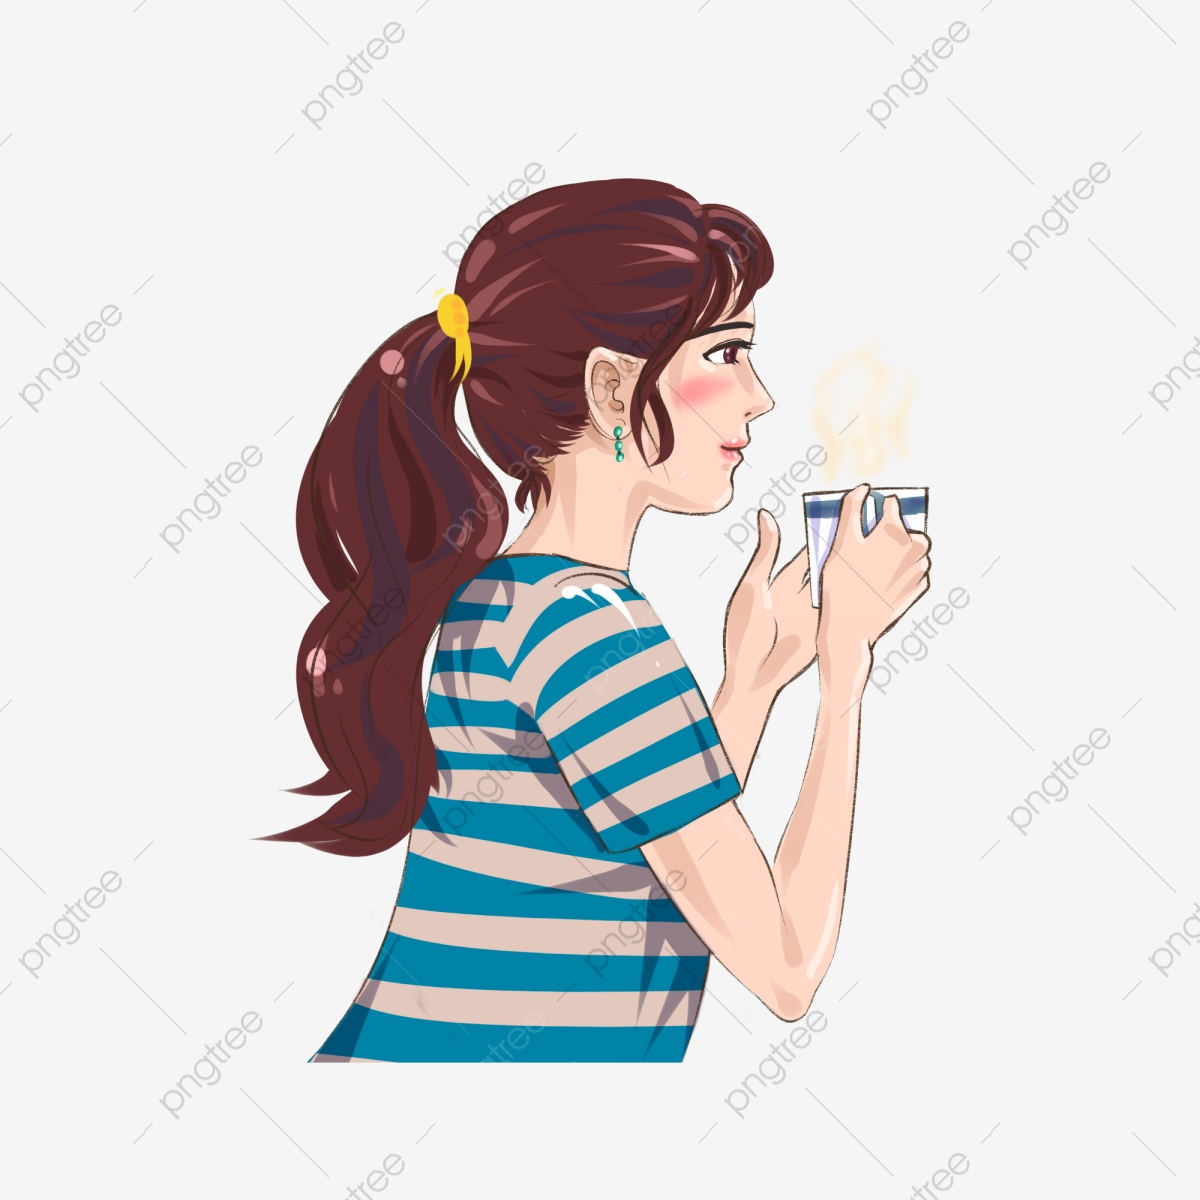 cartoon woman drinking coffee side element drink coffee woman cartoon png transparent image and clipart for free download https pngtree com freepng cartoon woman drinking coffee side element 4072784 html